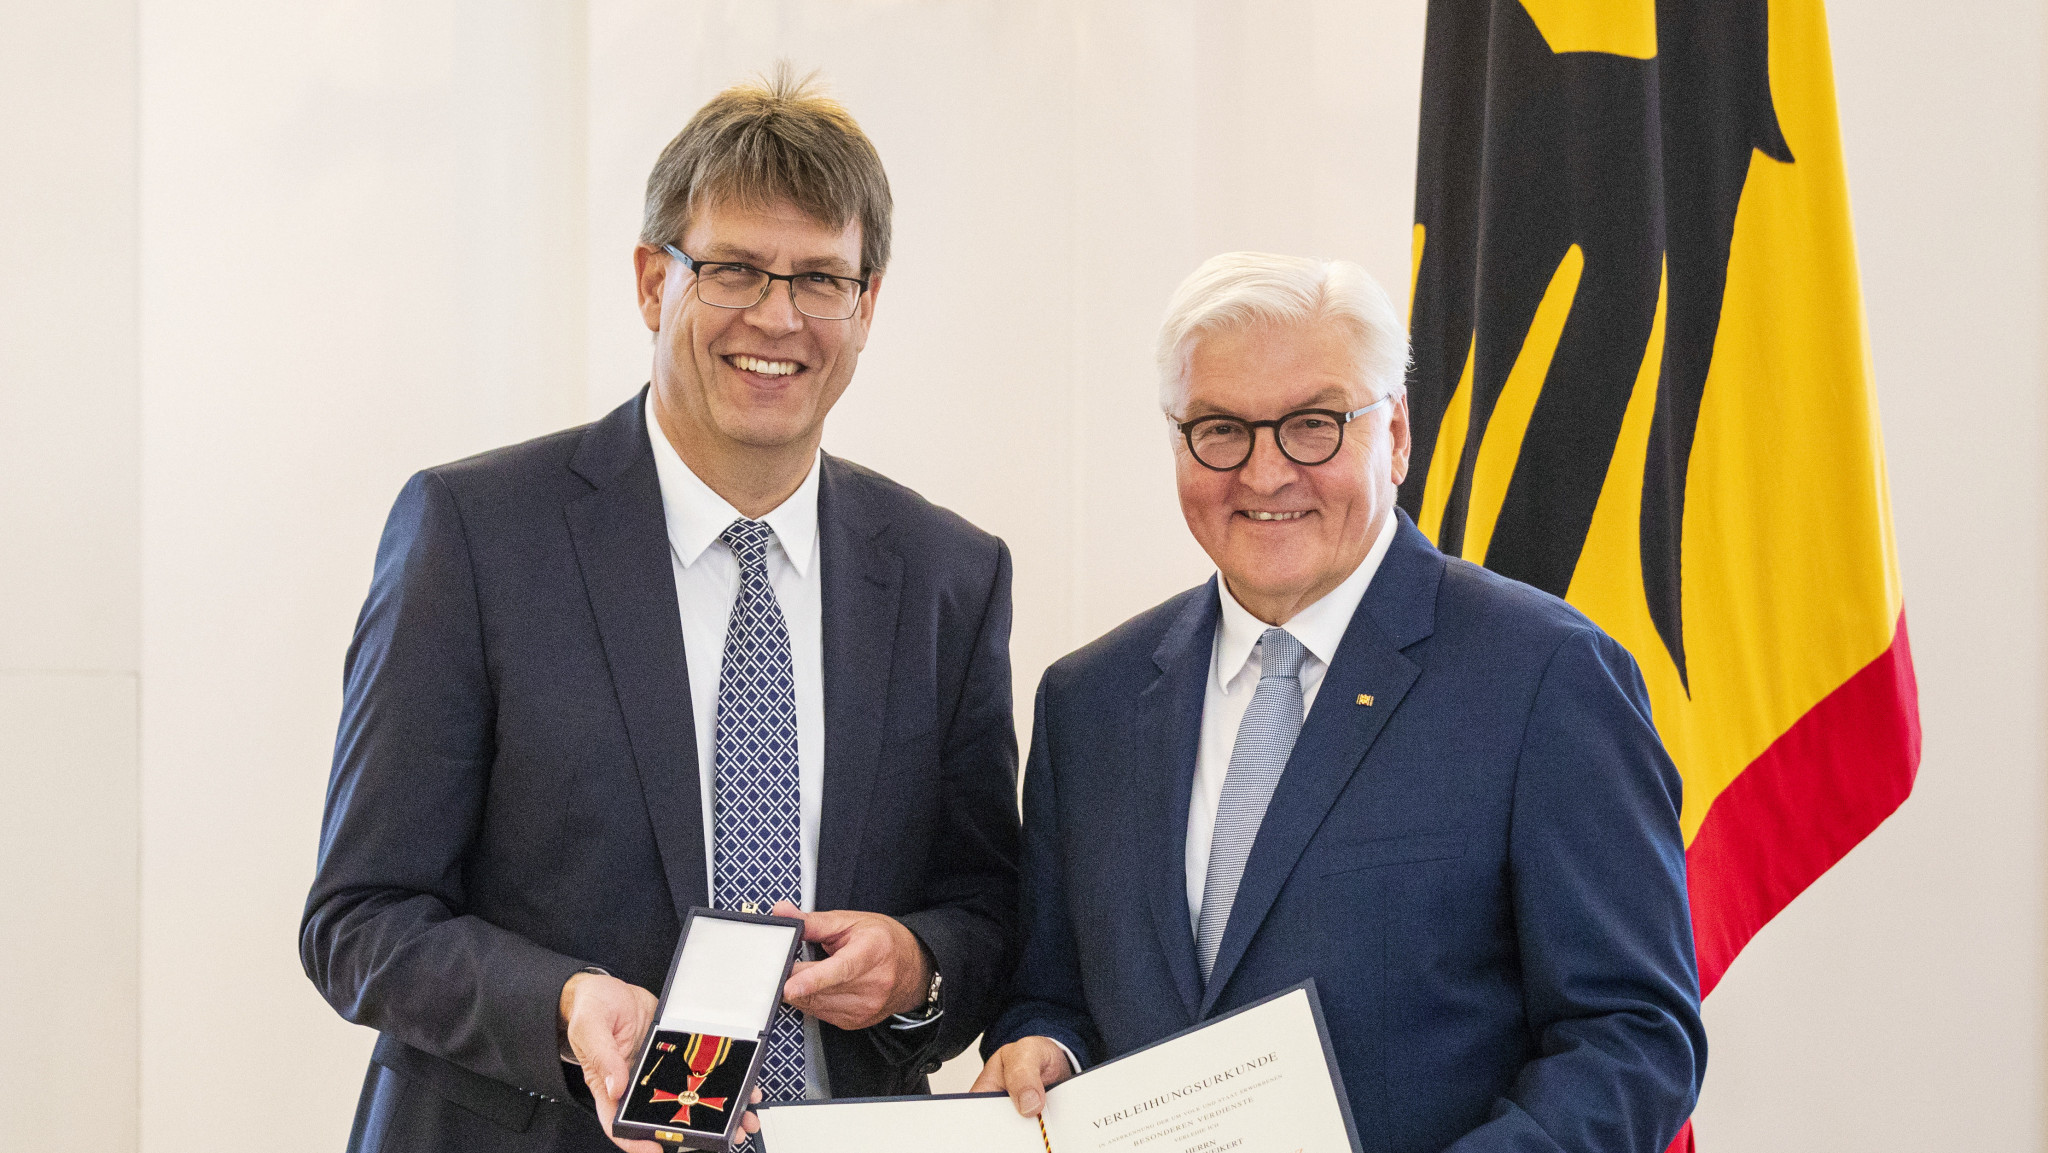 Thomas Weikert, left, received the special award from Frank-Walter Steinmeier ©ITTF